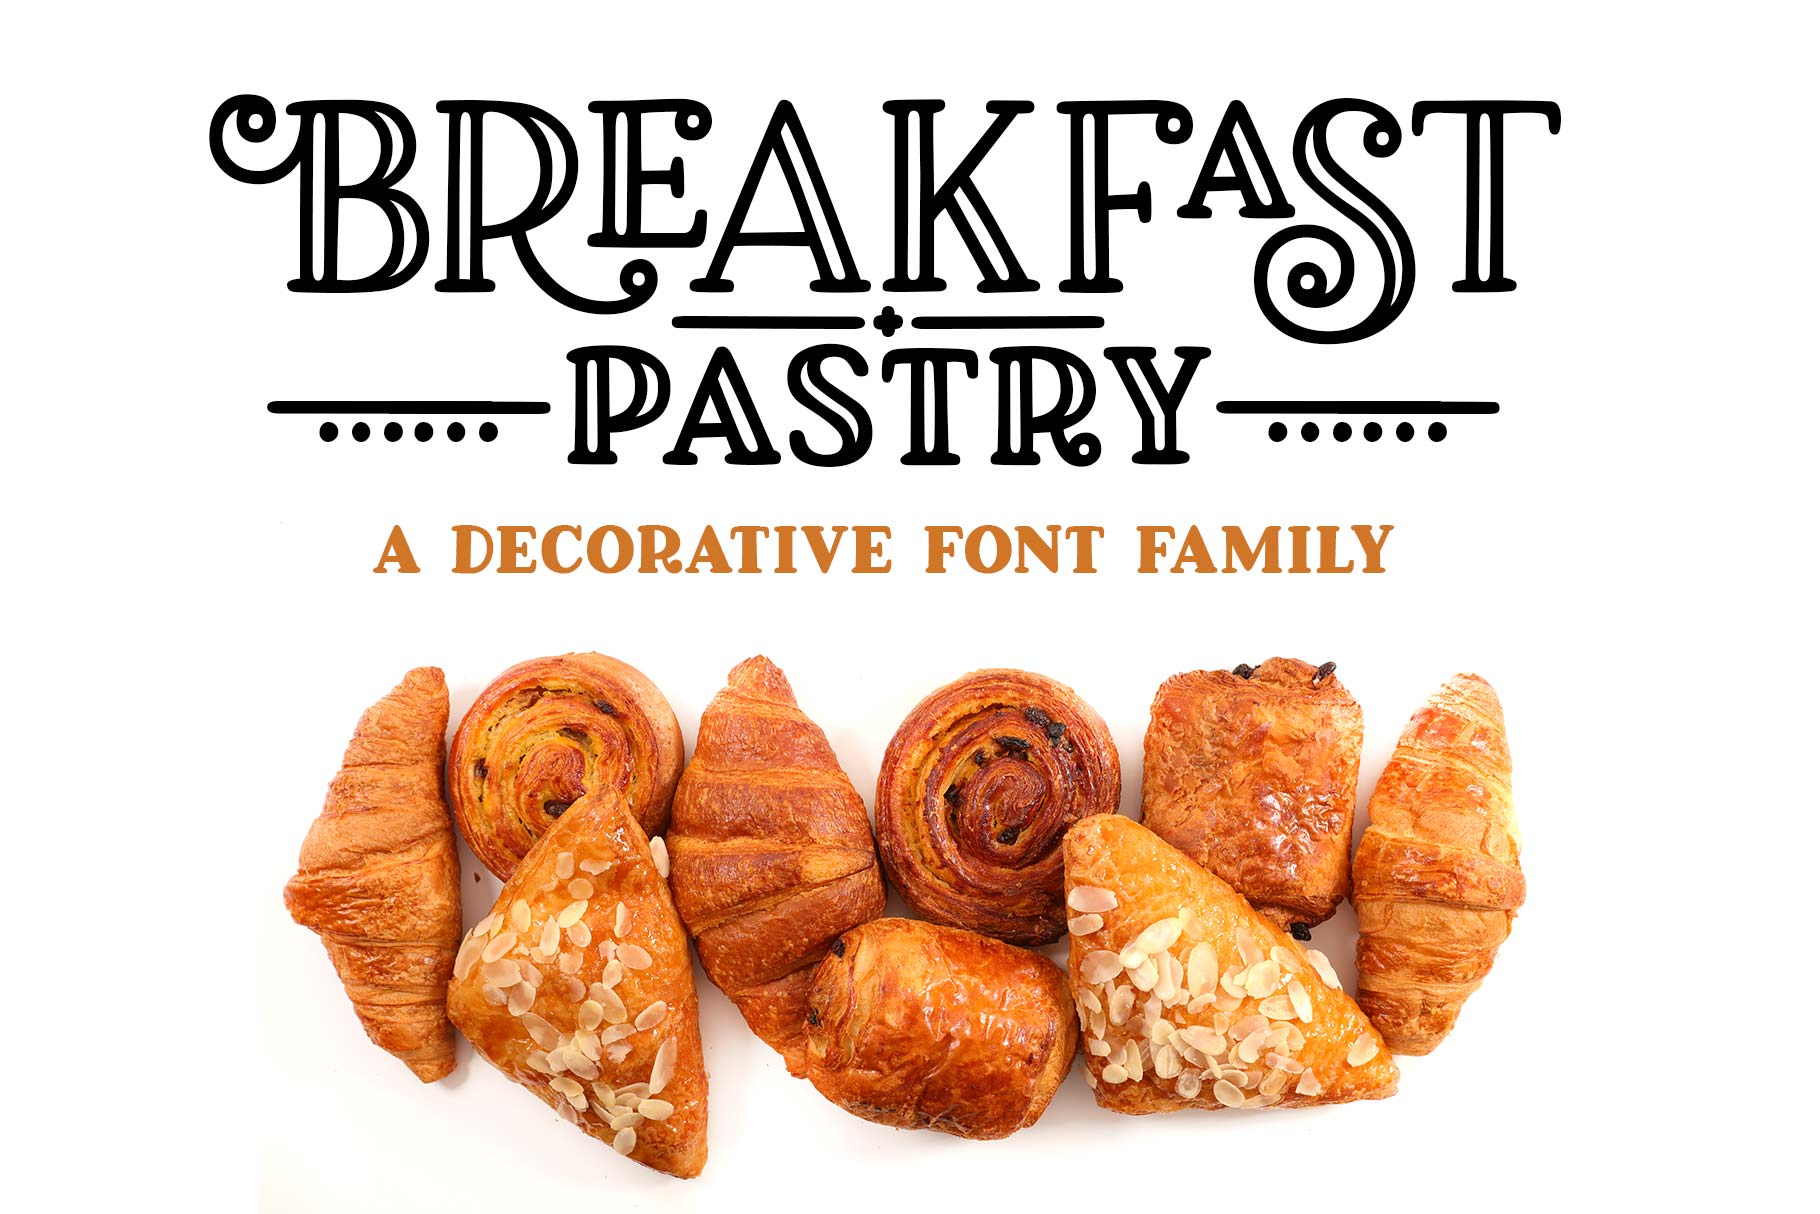 Breakfast Pastry a decorative font family! example image 1